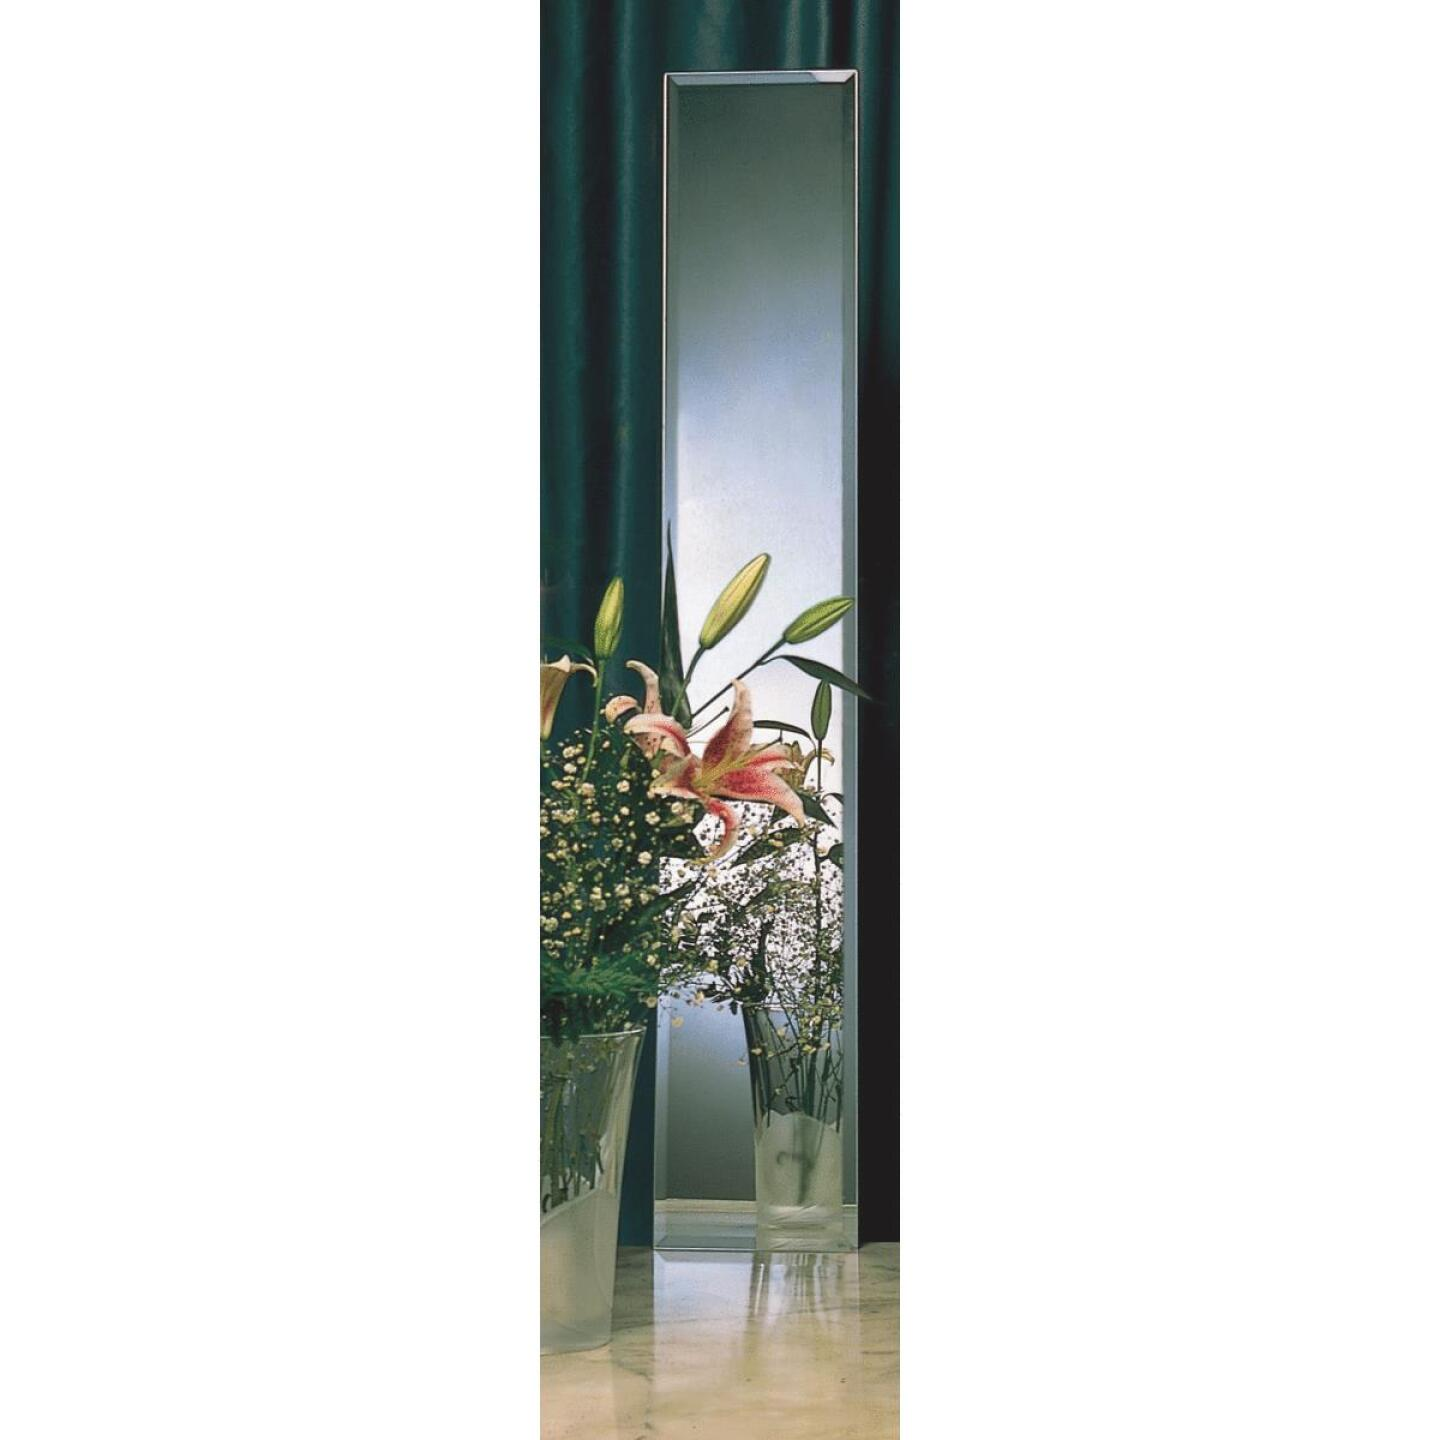 Erias Home Designs 16 In. W. X 60 In. H. Frameless Beveled Edge Door Mirror Image 2